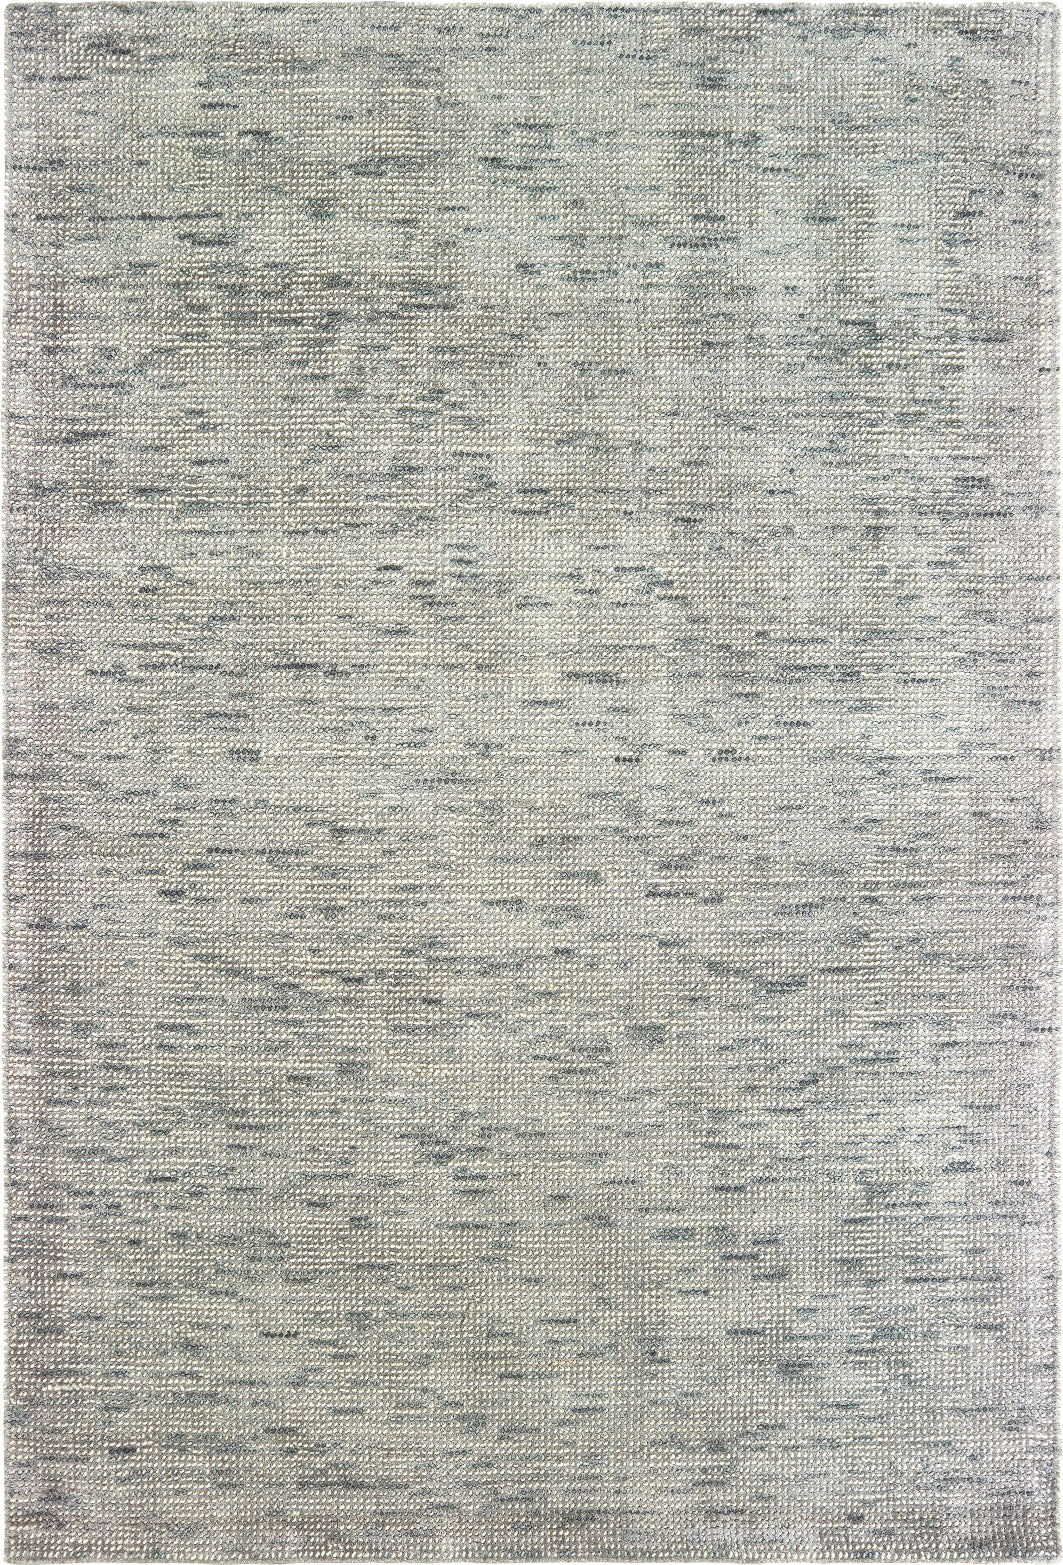 Tommy Bahama Lucent 45905 Stone Grey Area Rug main image